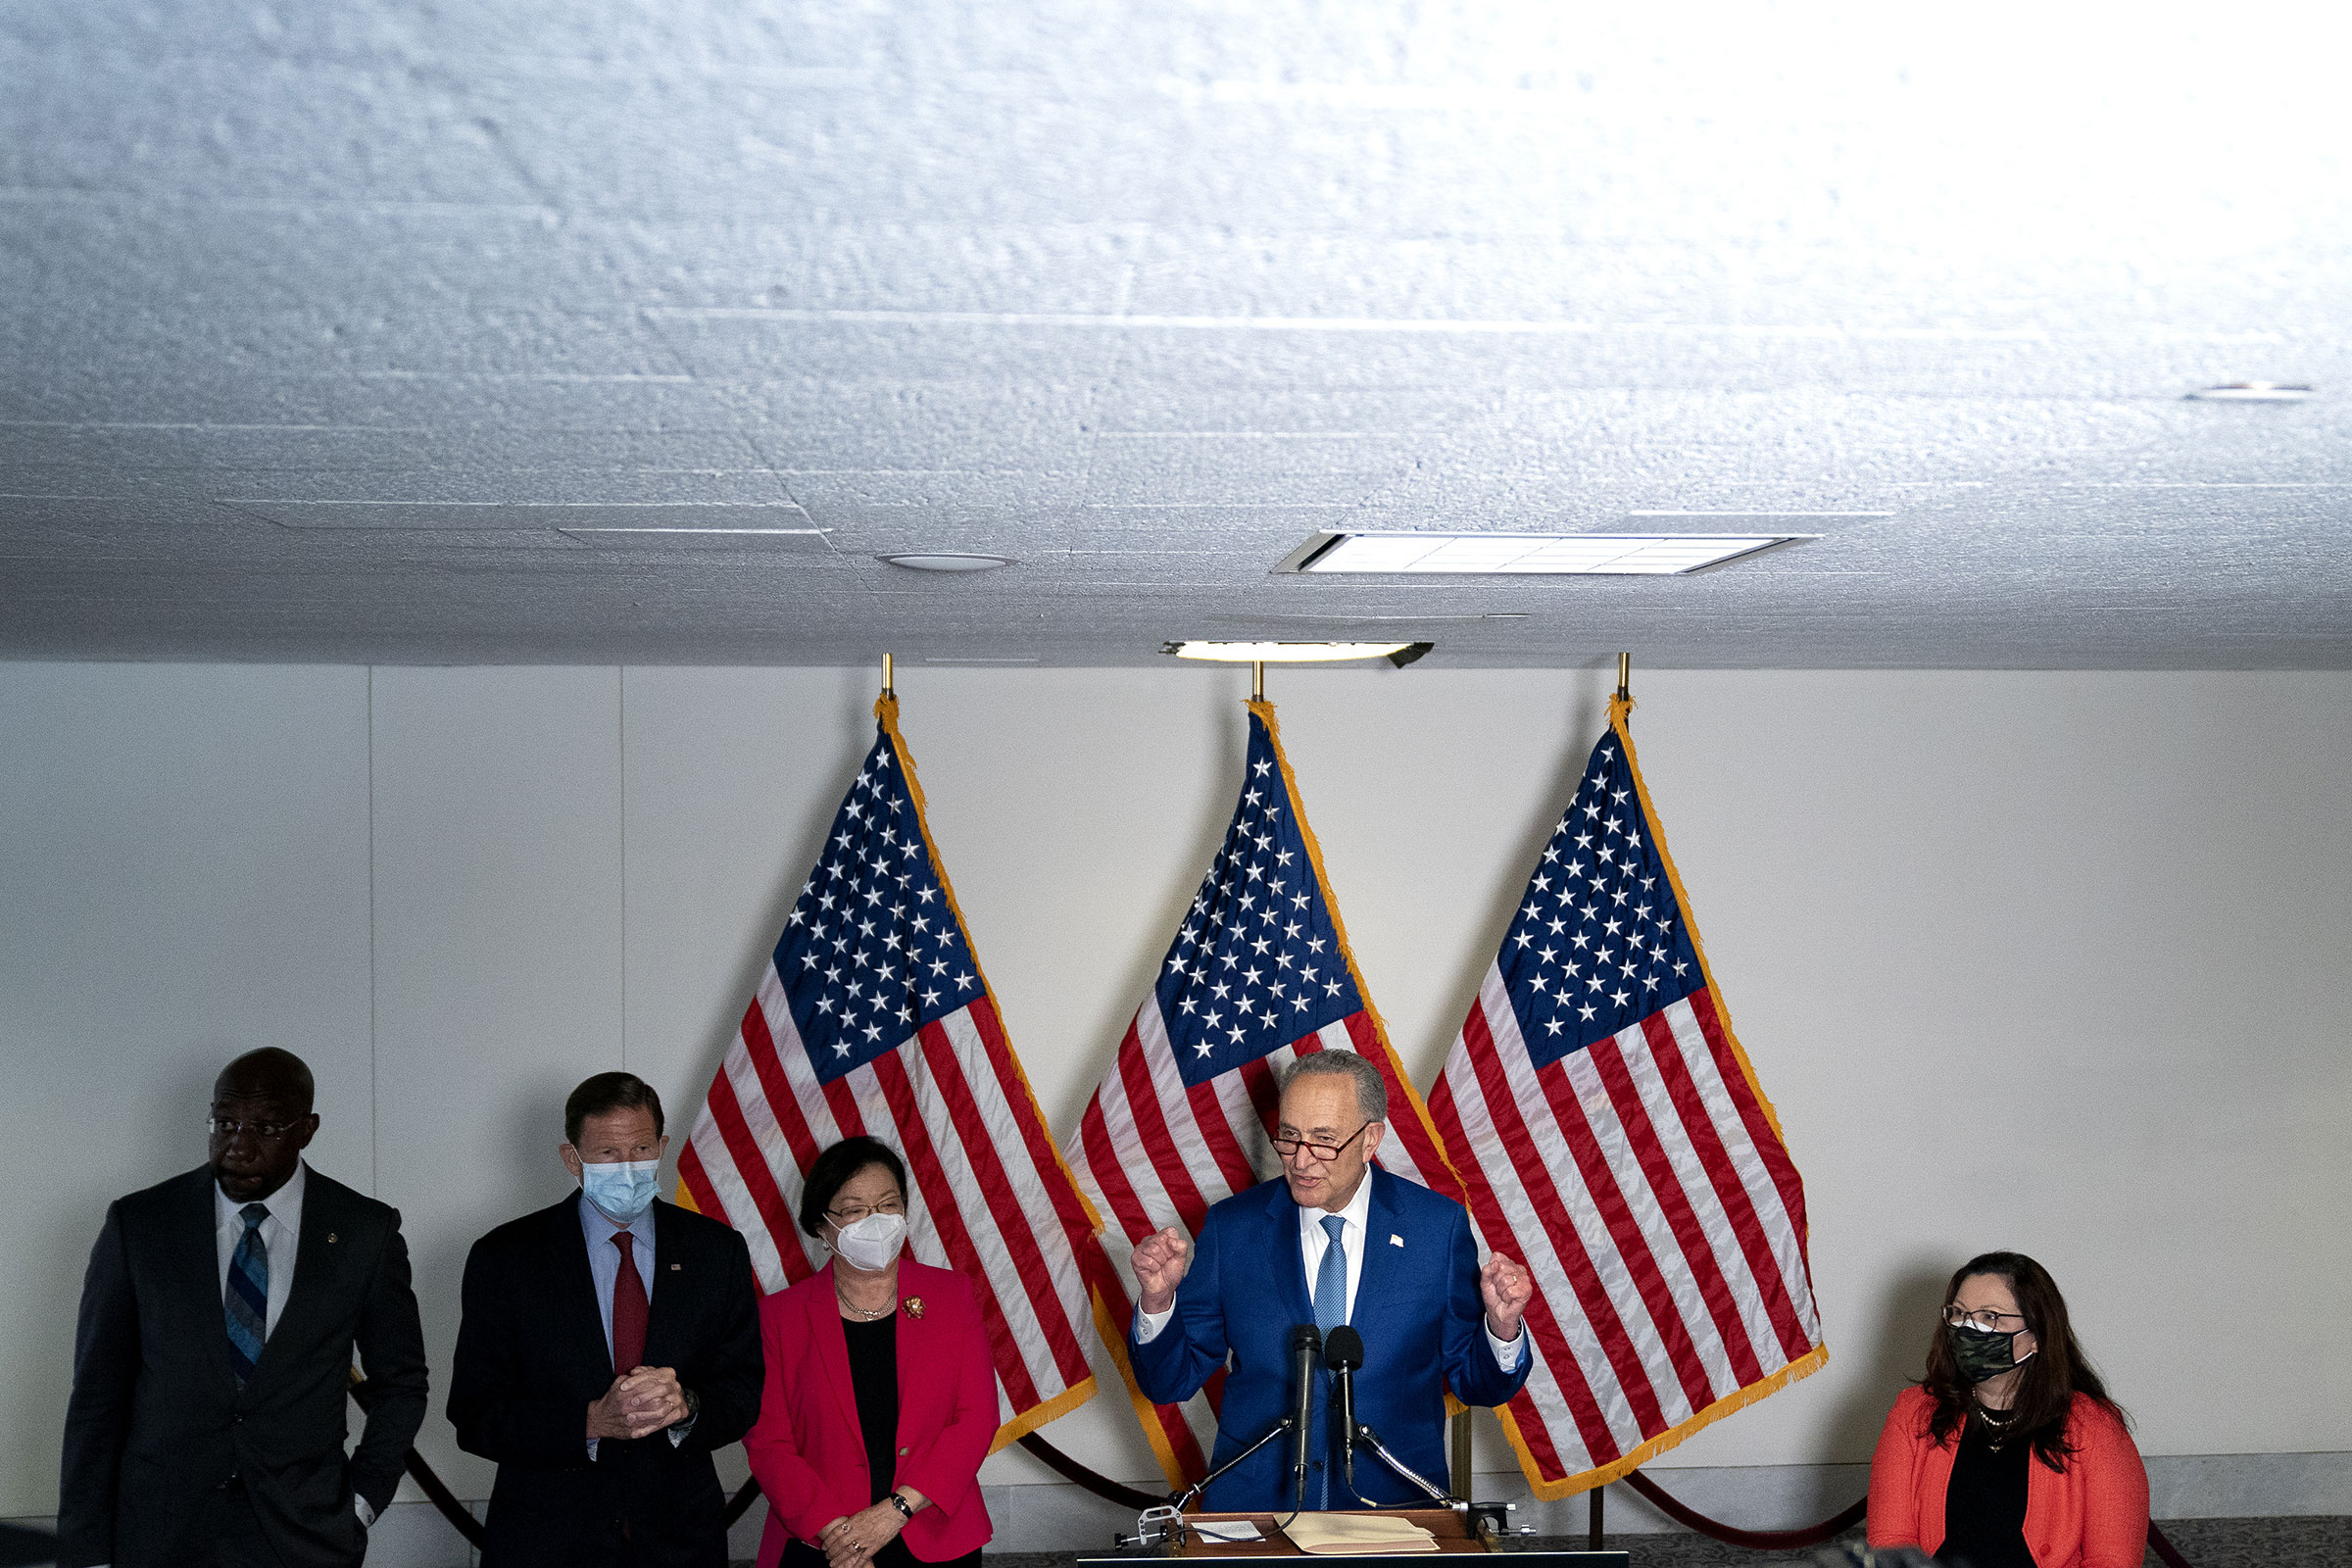 Senate Majority Leader Chuck Schumer, a Democrat from New York, center, speaks to members of the media following Senate Democratic policy luncheons in the Hart Senate Office Building in Washington, on April 20, 2021.